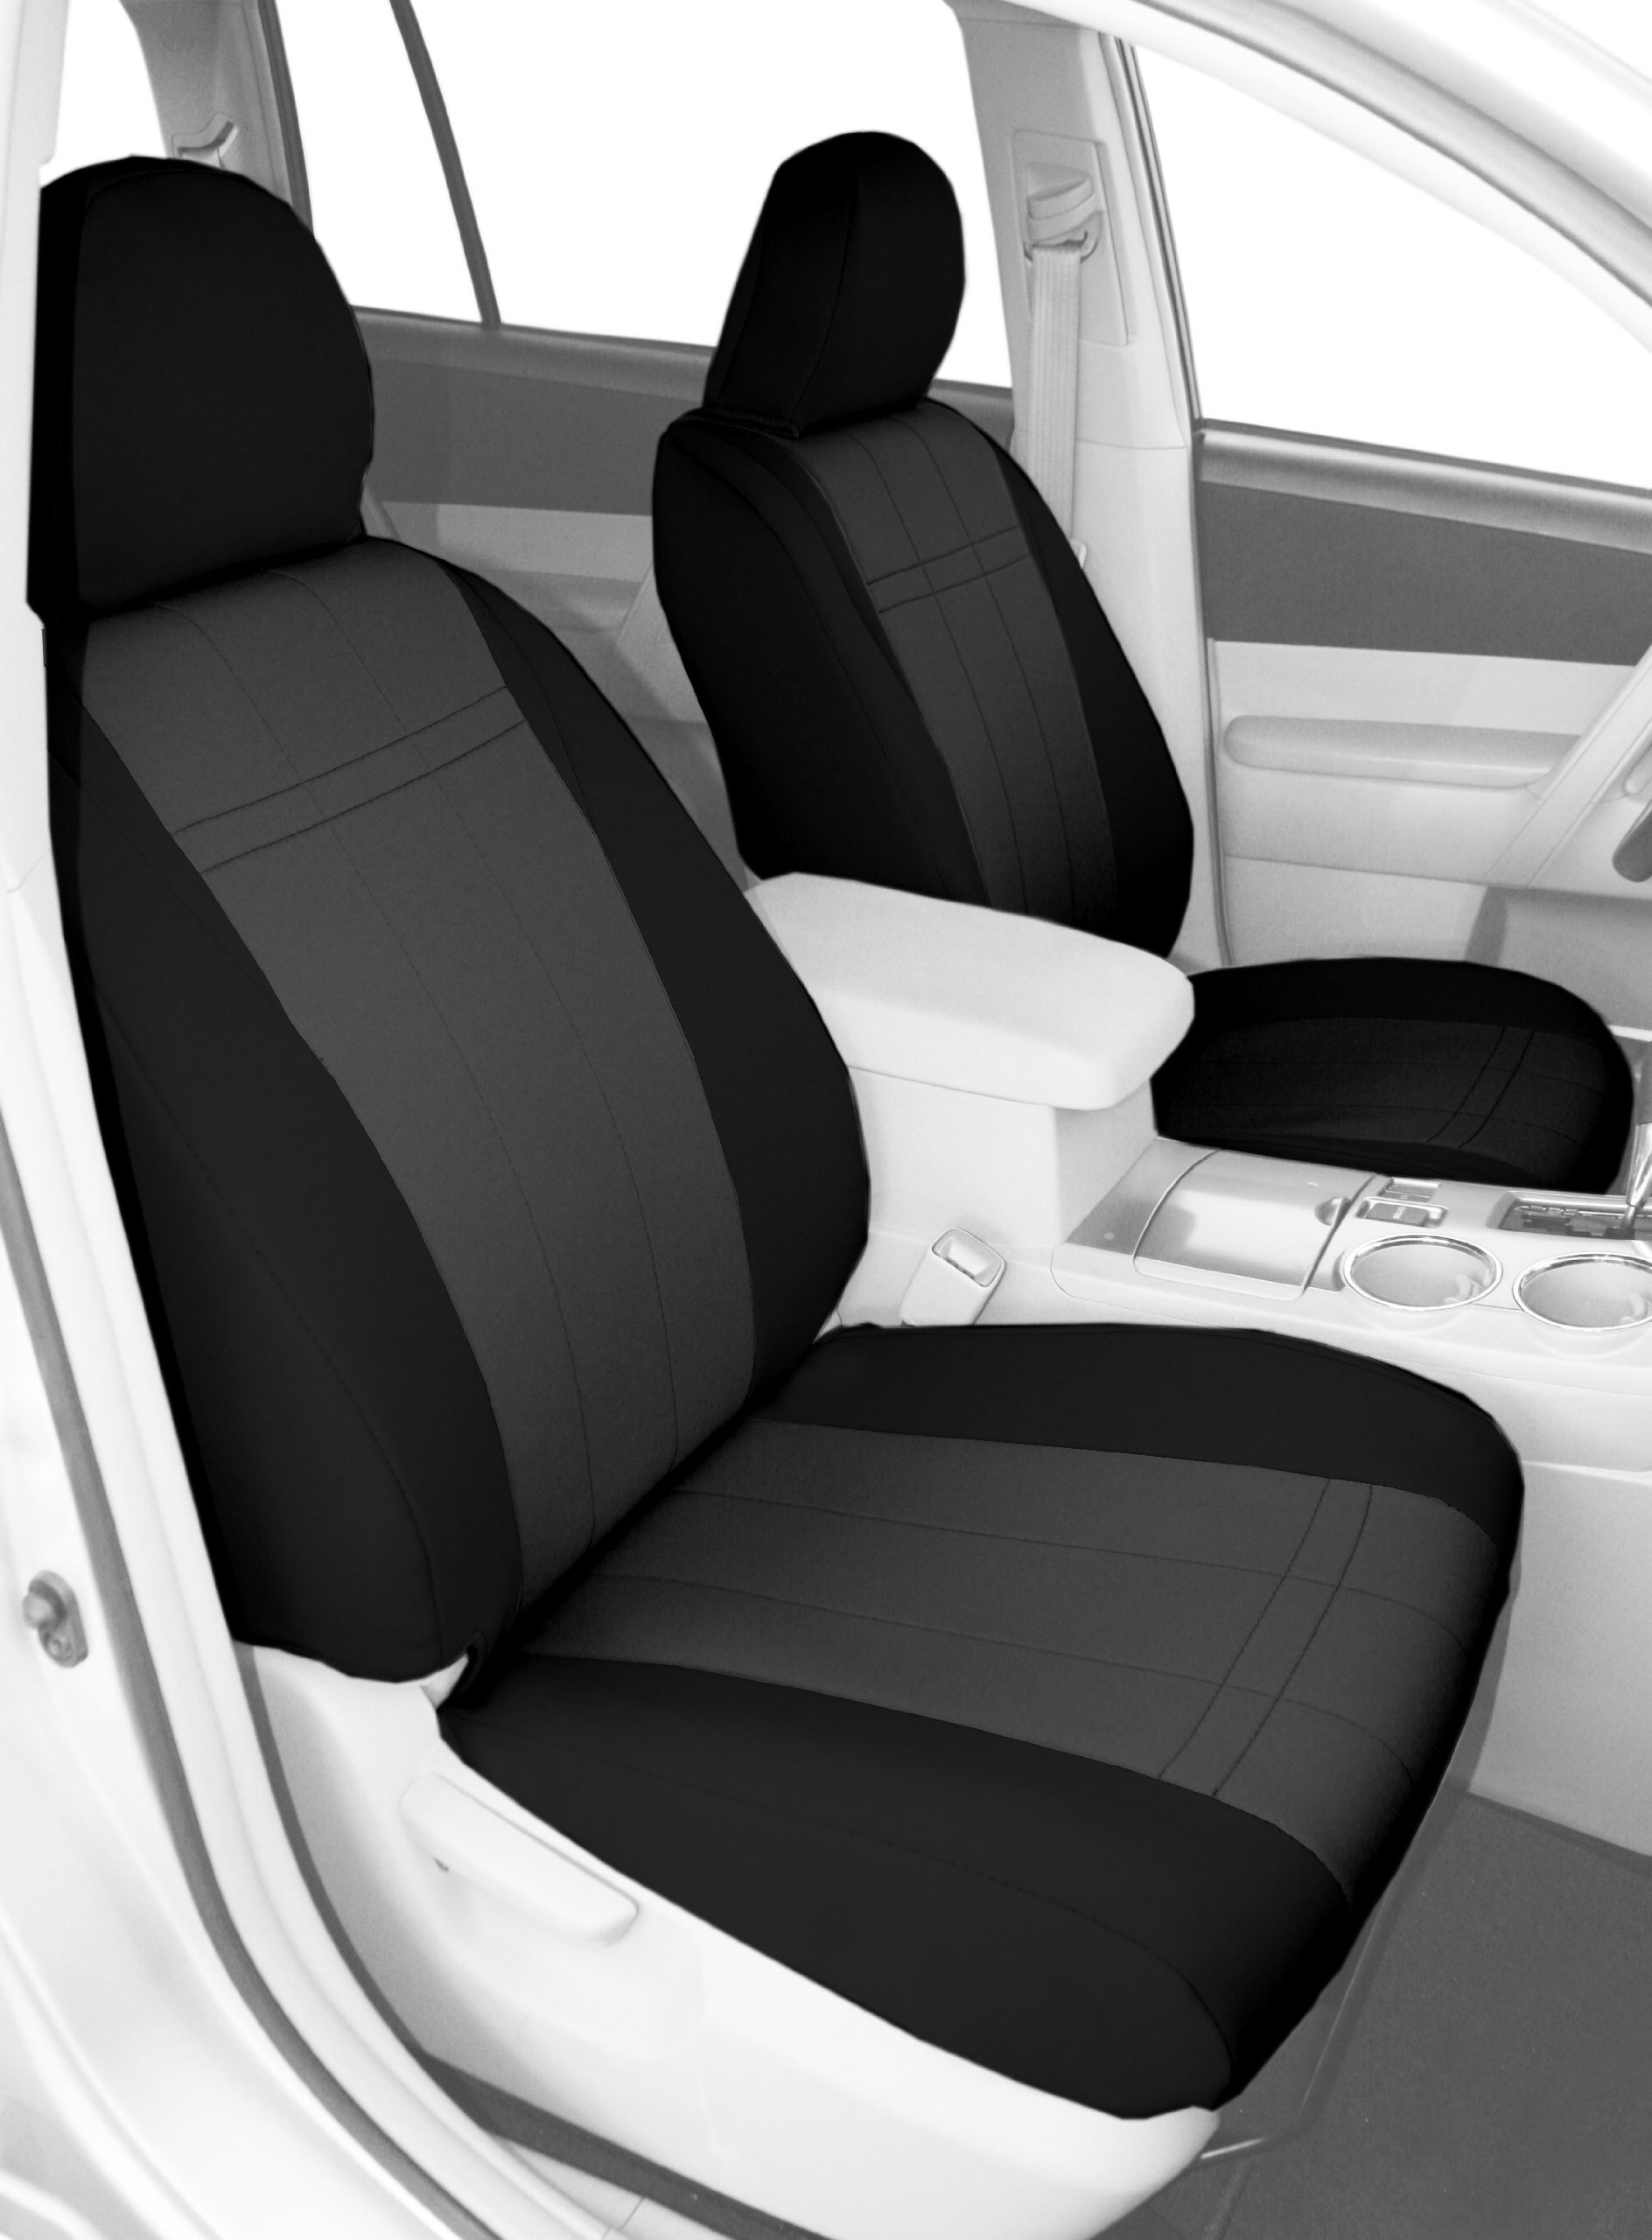 CalTrend Front Row Bucket Custom Fit Seat Cover for Select Toyota Tacoma Models - Neoprene (Charcoal Insert with Black Trim) by CalTrend